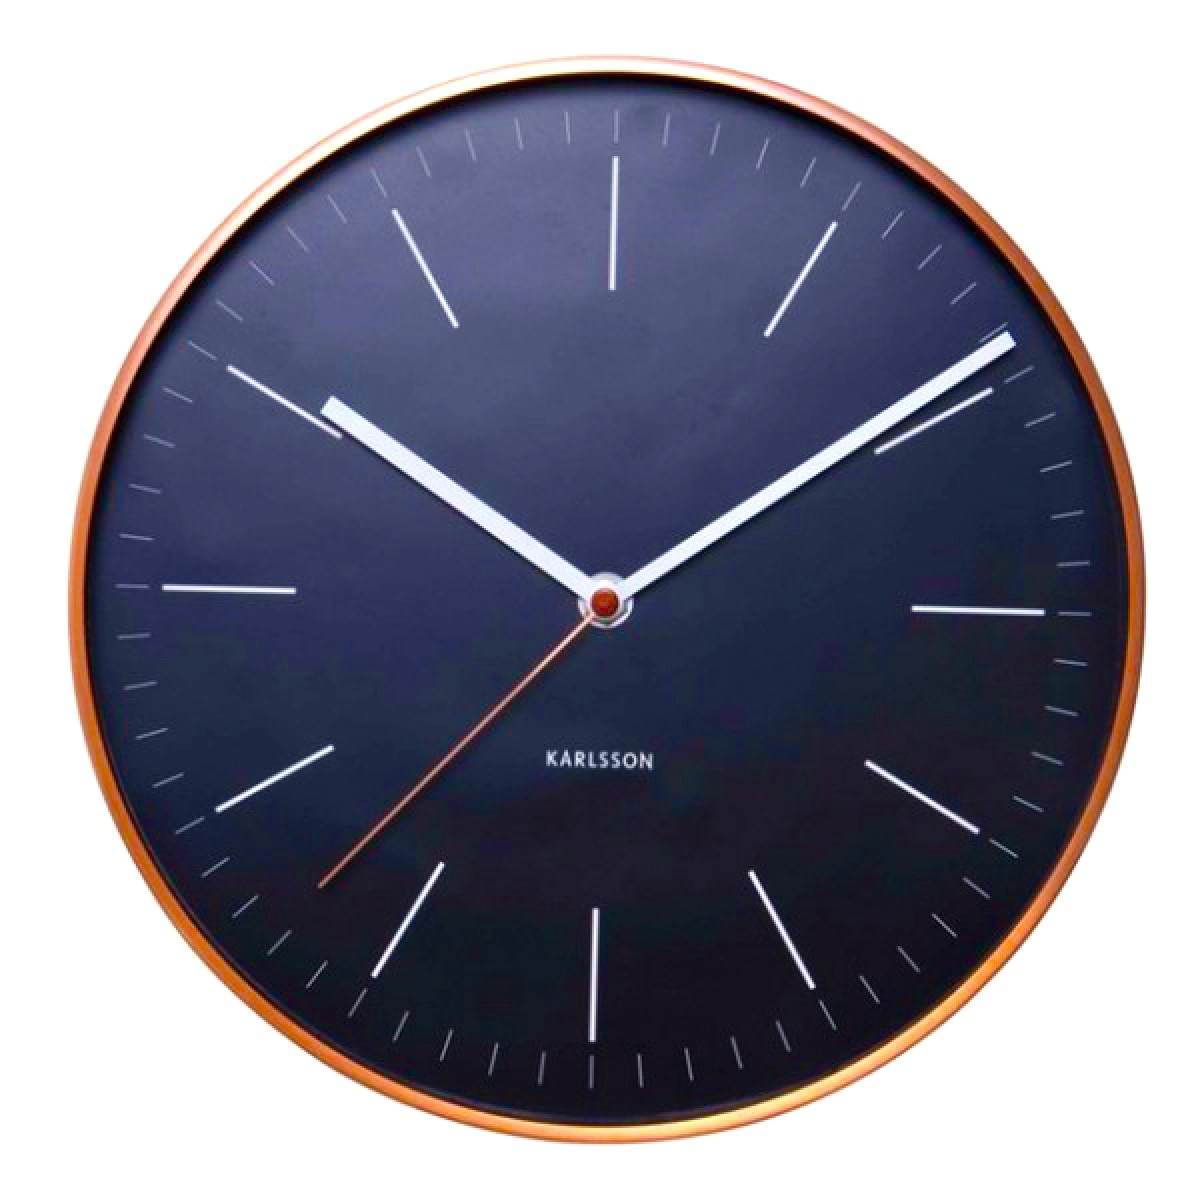 Black Wall Clock Karlsson Wall Clock Watch Copper Black